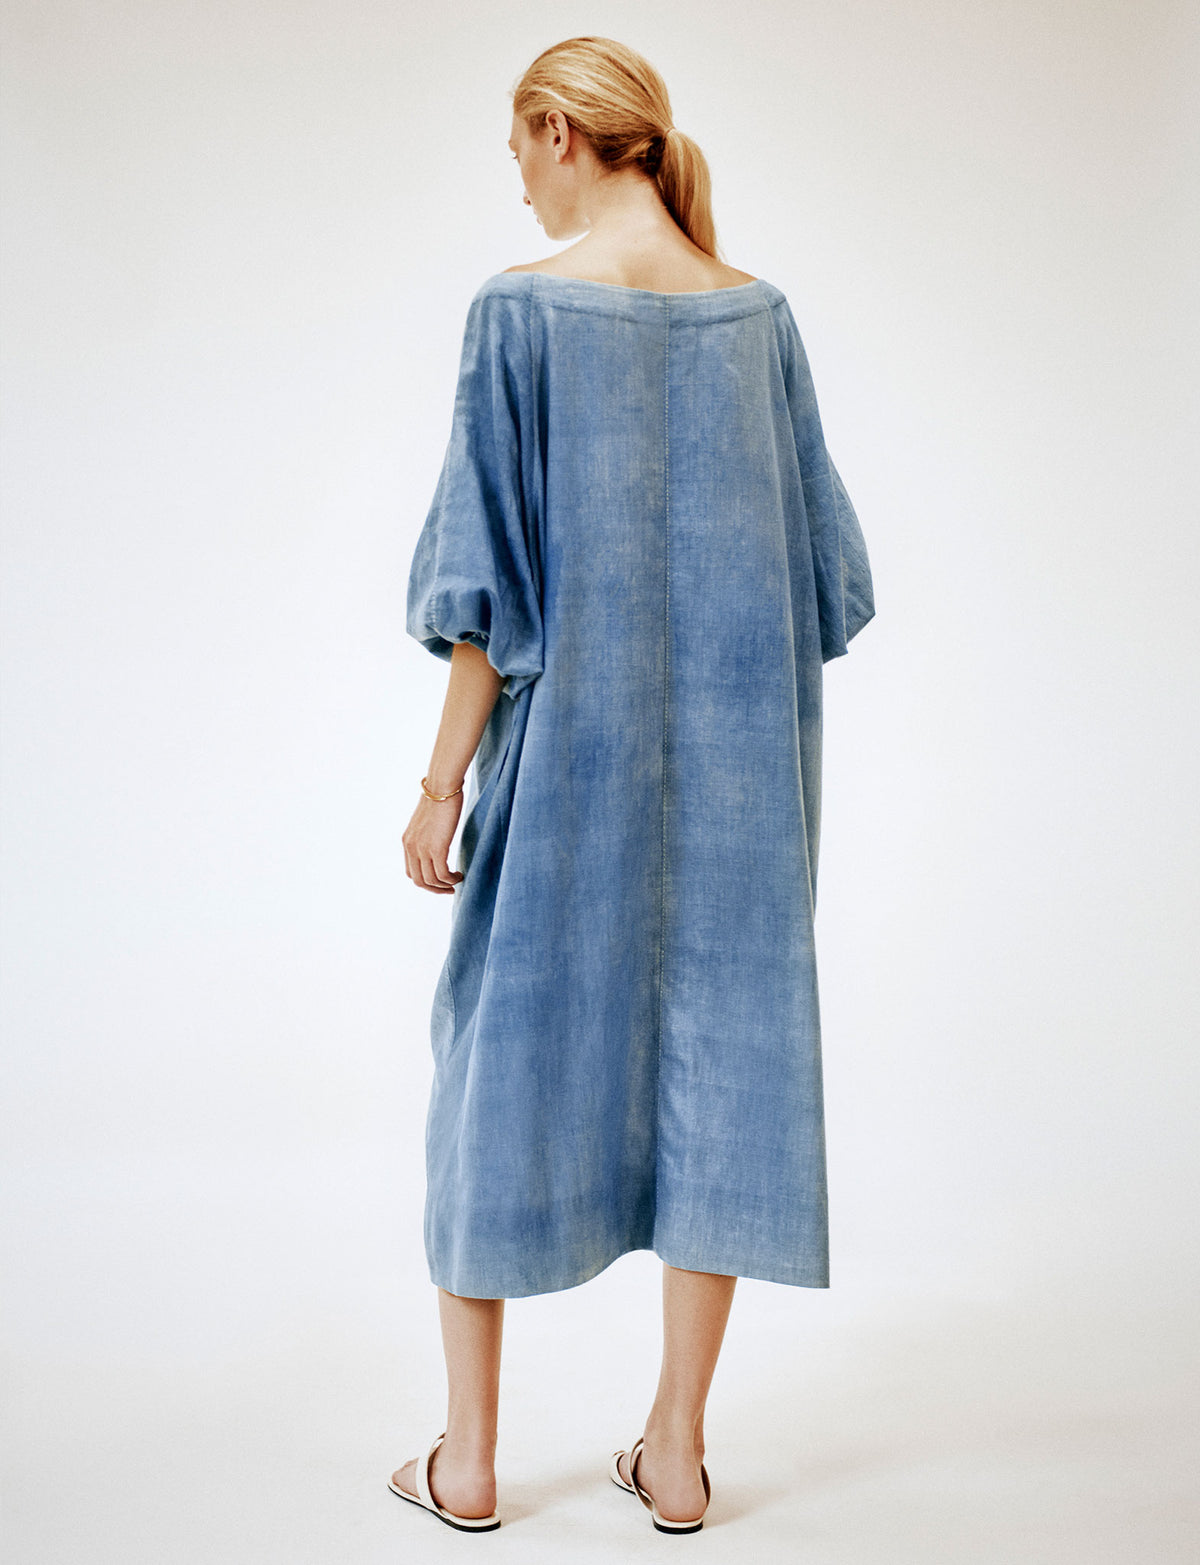 Meditation Dress light indigo